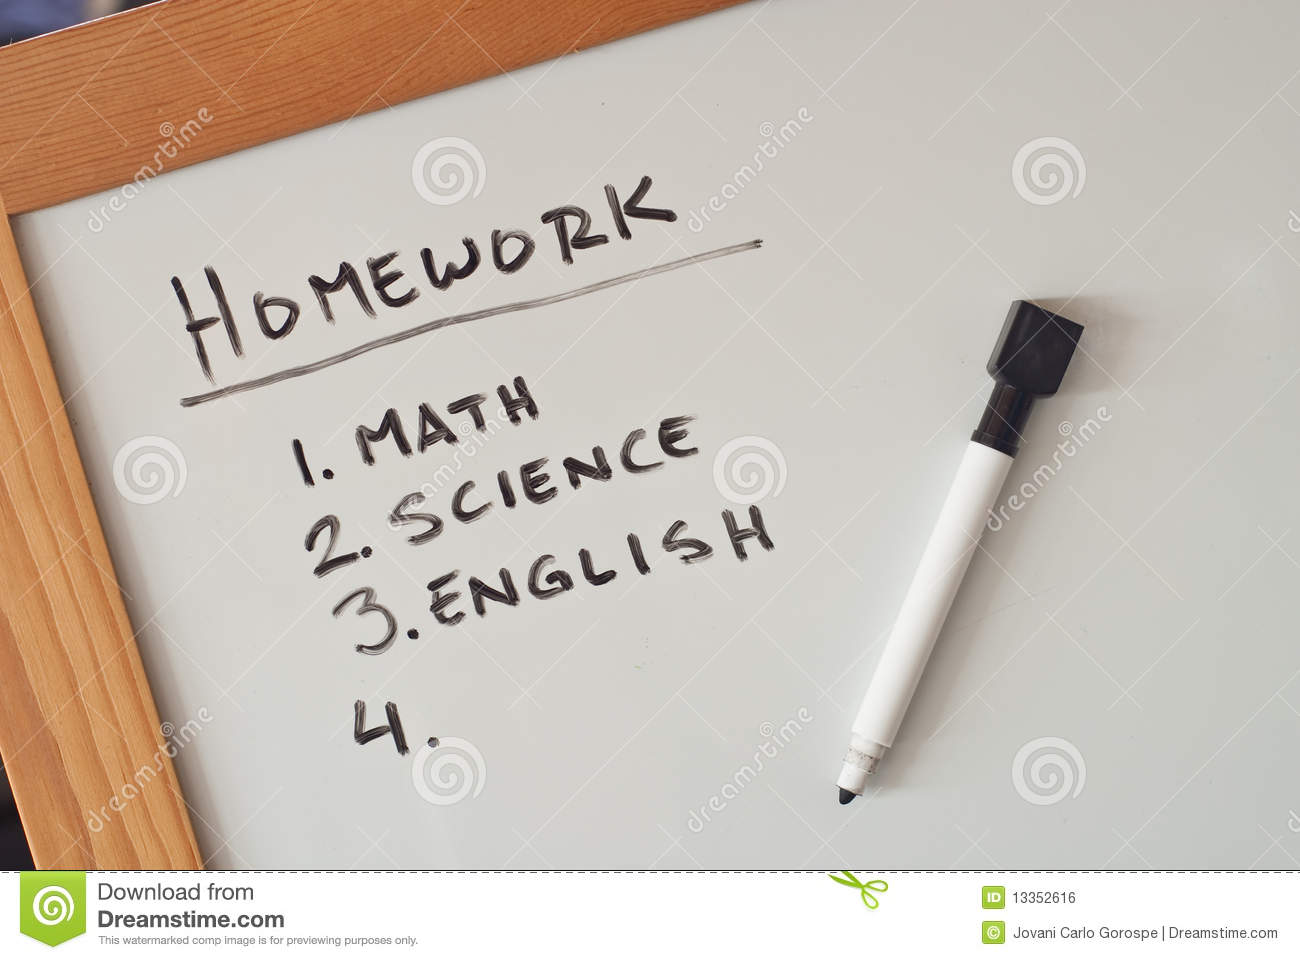 Whiteboard homework help